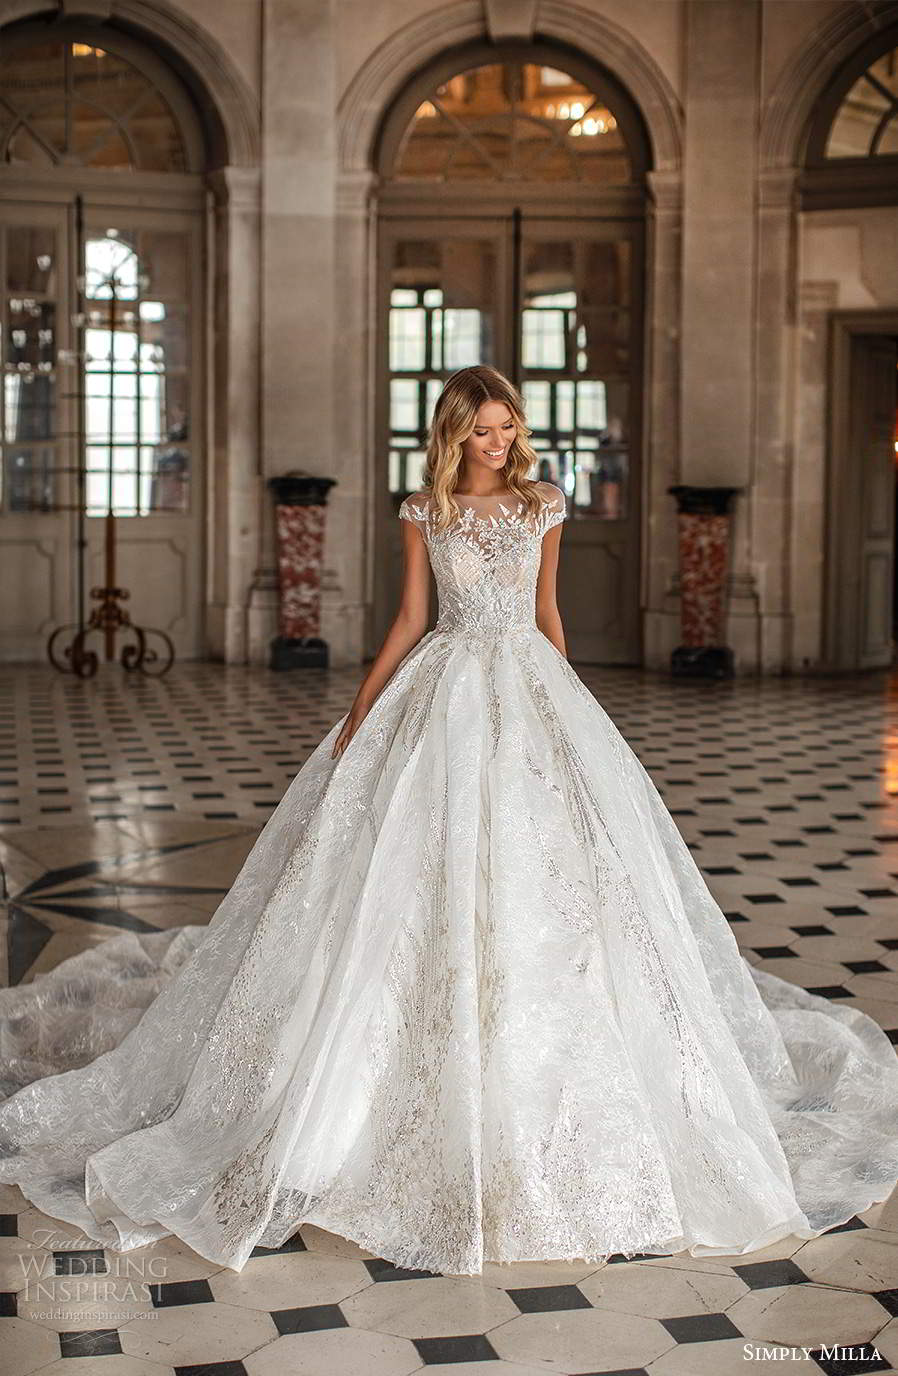 simply milla nova 2020 bridal sheer cap sleeves bateau neckline heavily embellished a line ball gown wedding dress cathedral train (13) mv